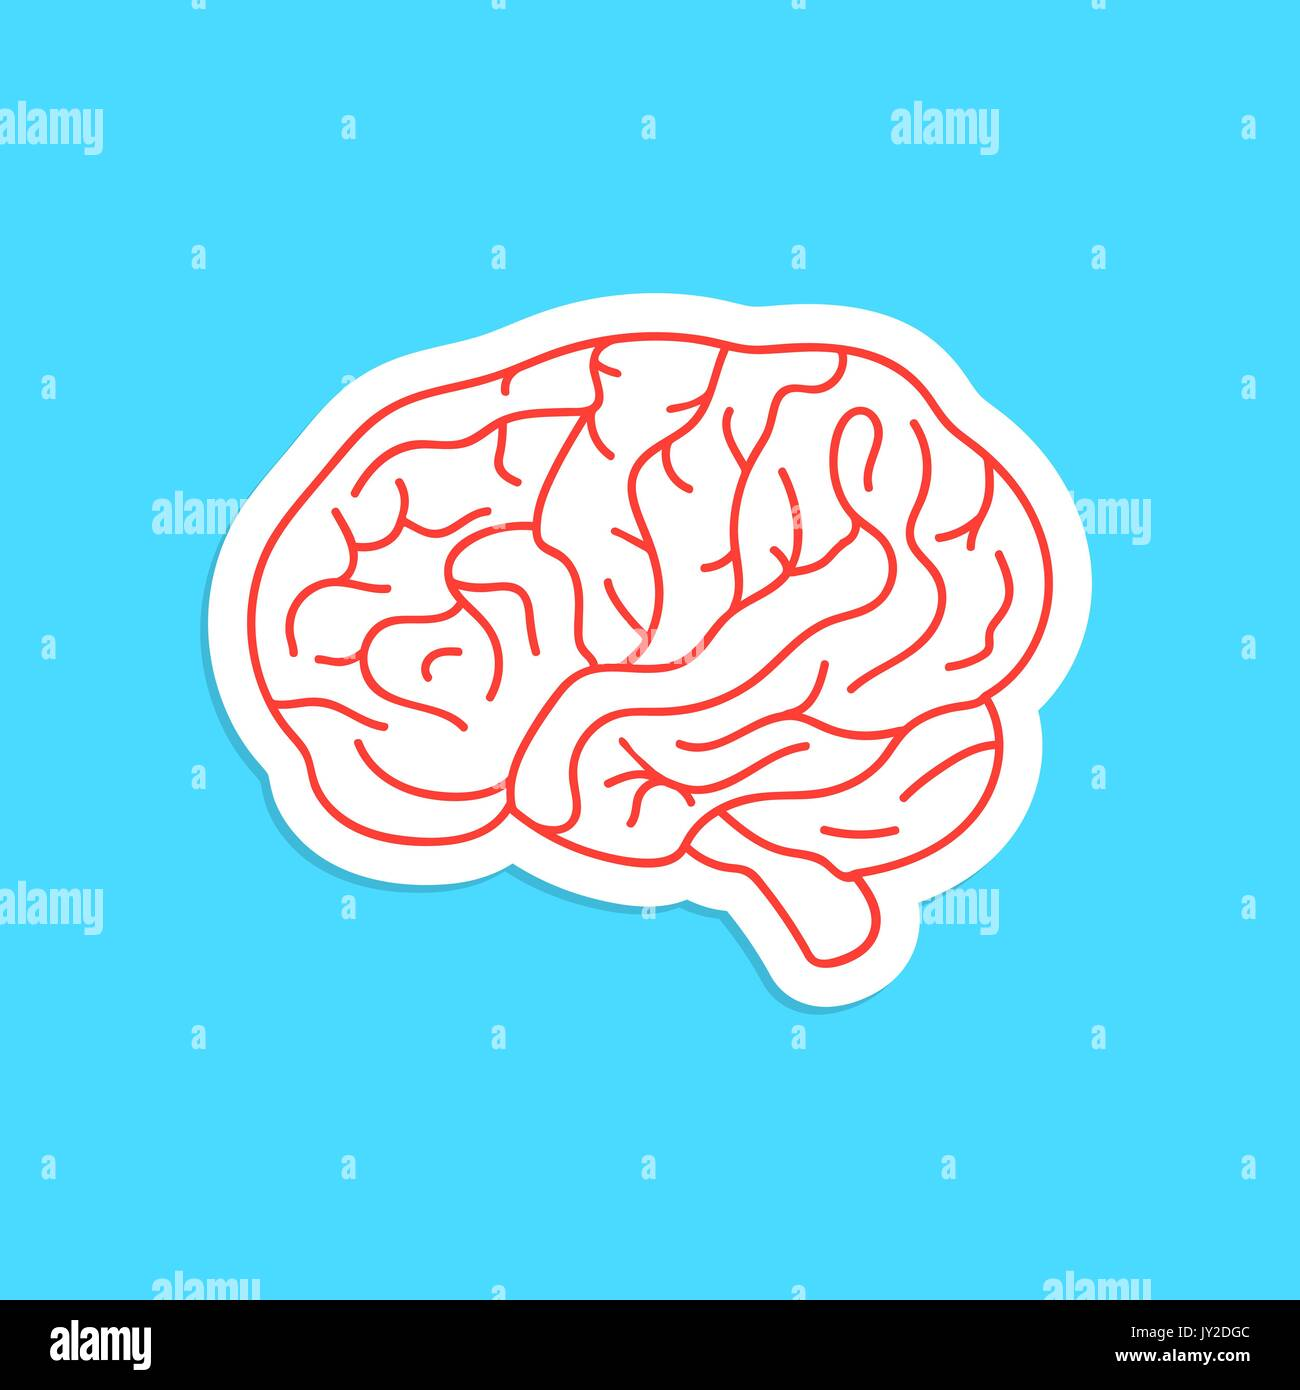 red outline brain icon sticker - Stock Image